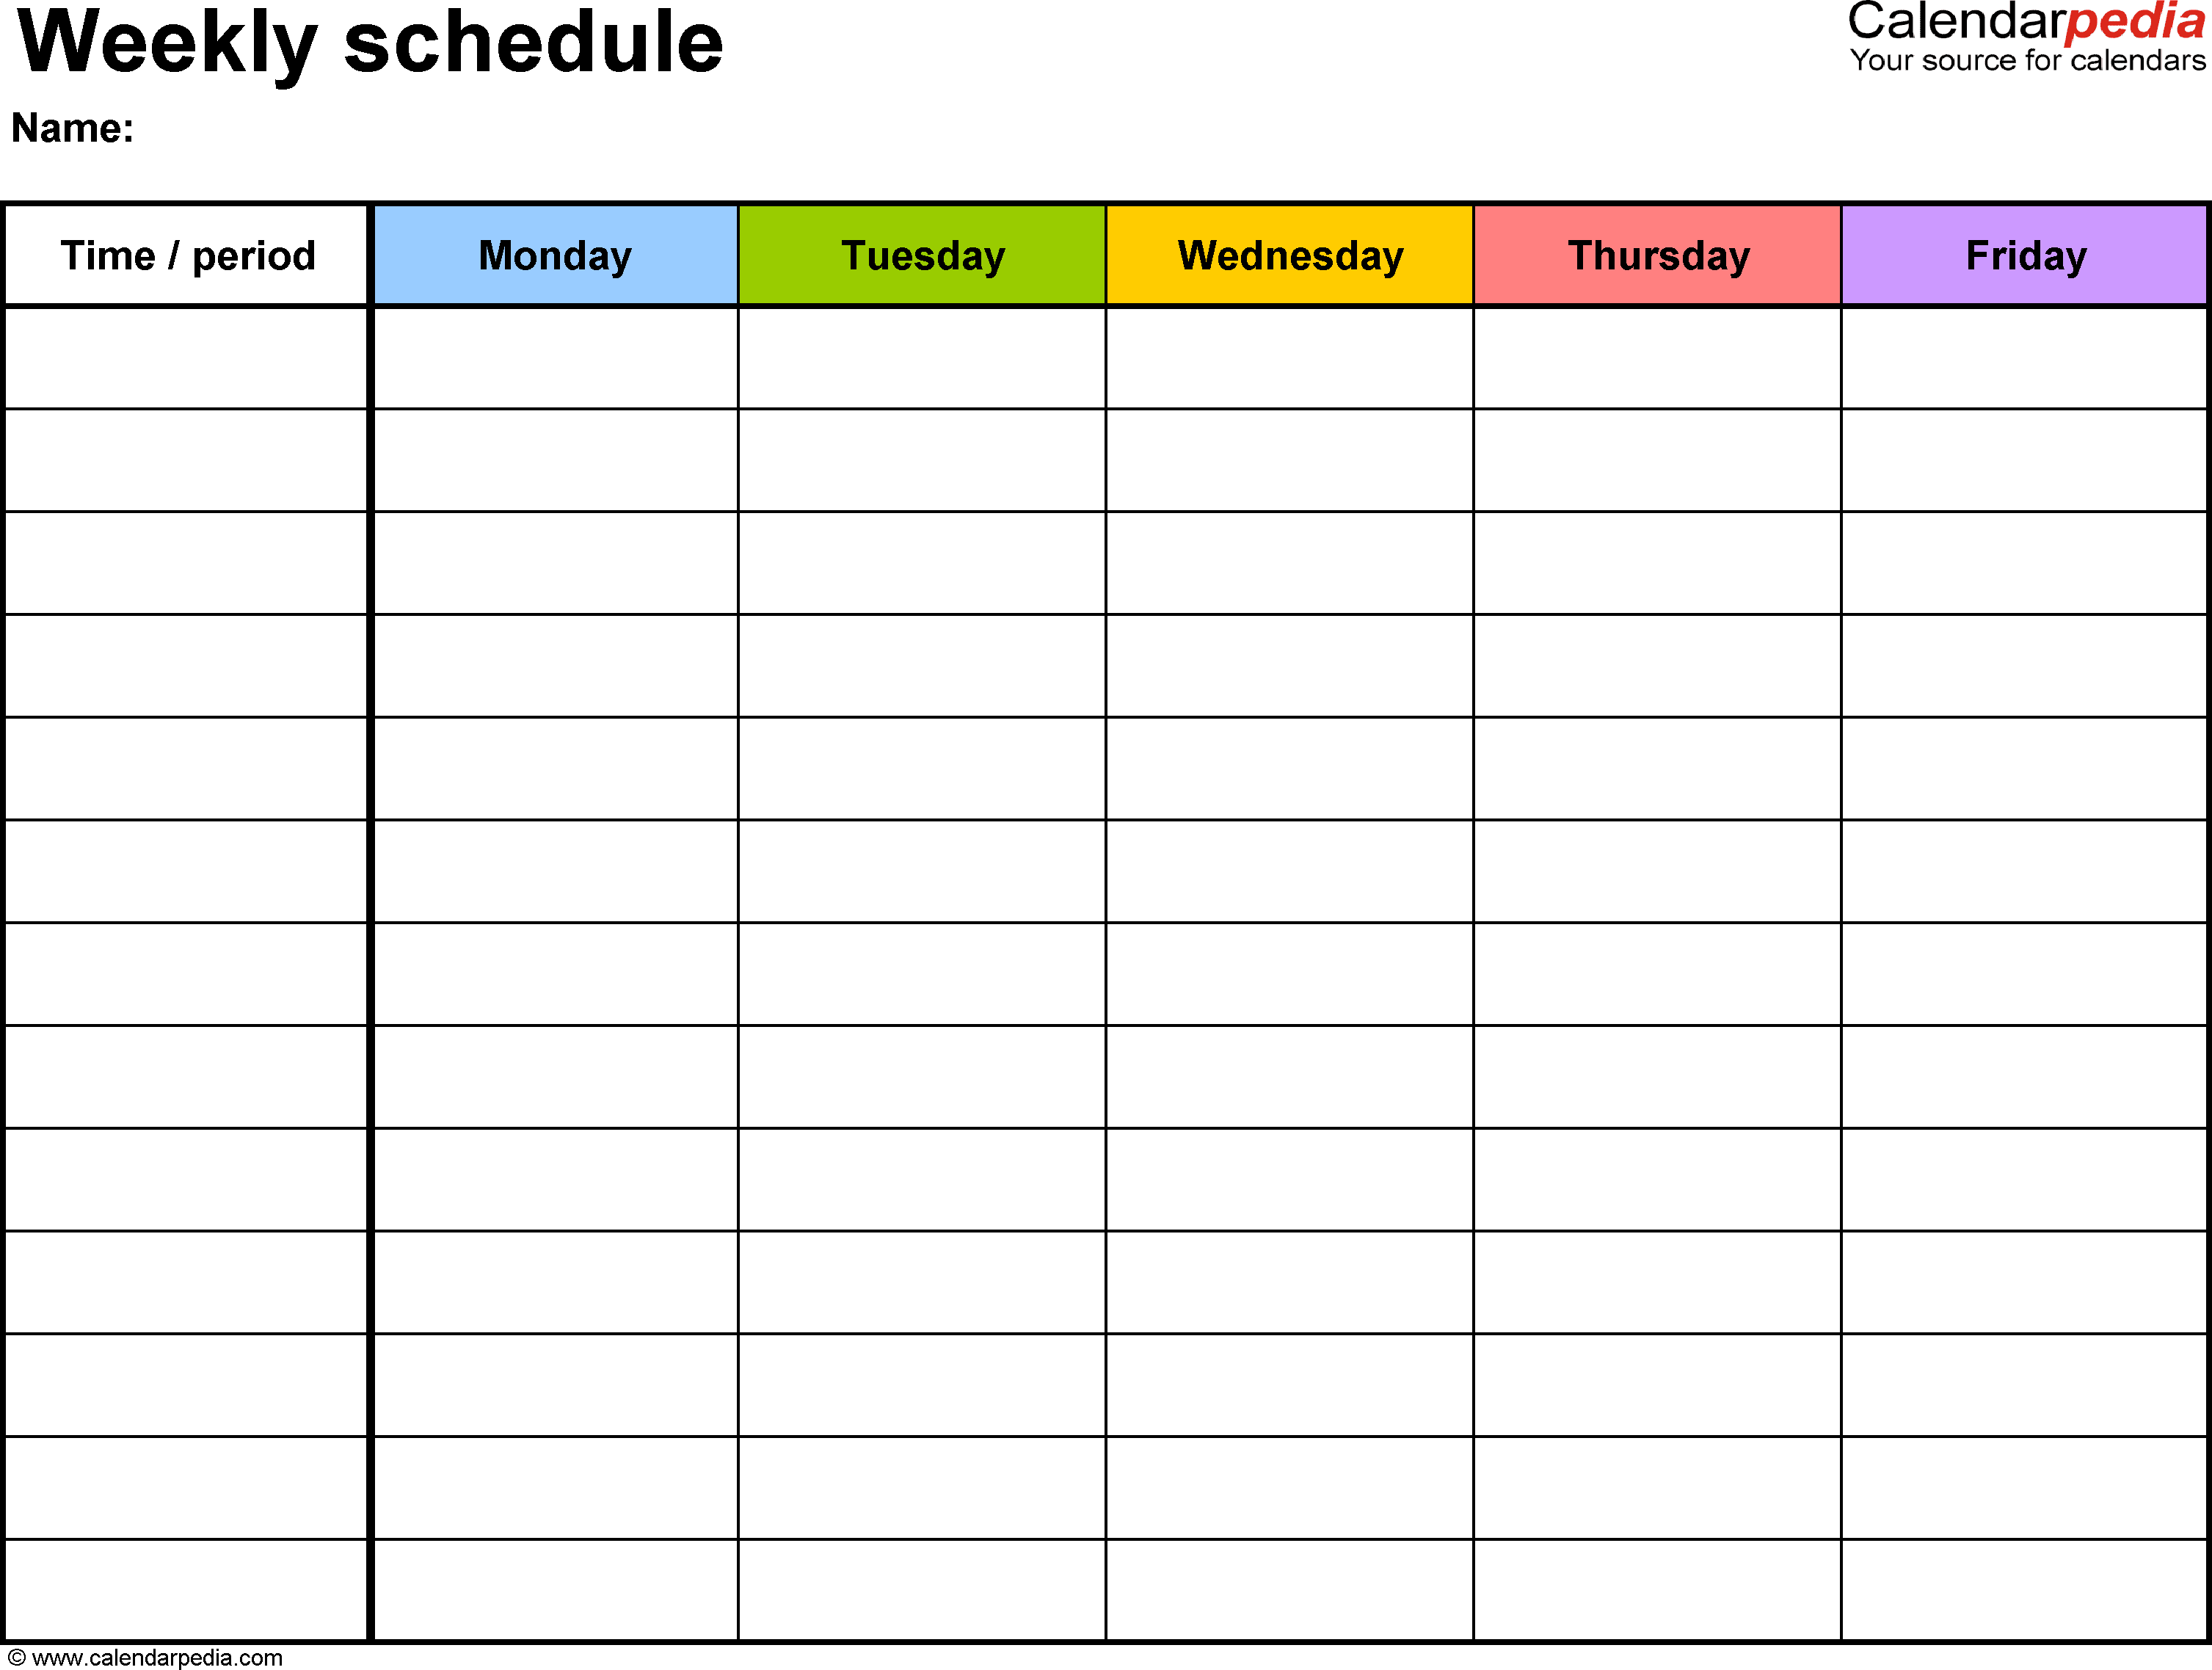 Weekly schedule template for Word version 1: landscape, 1 page ...